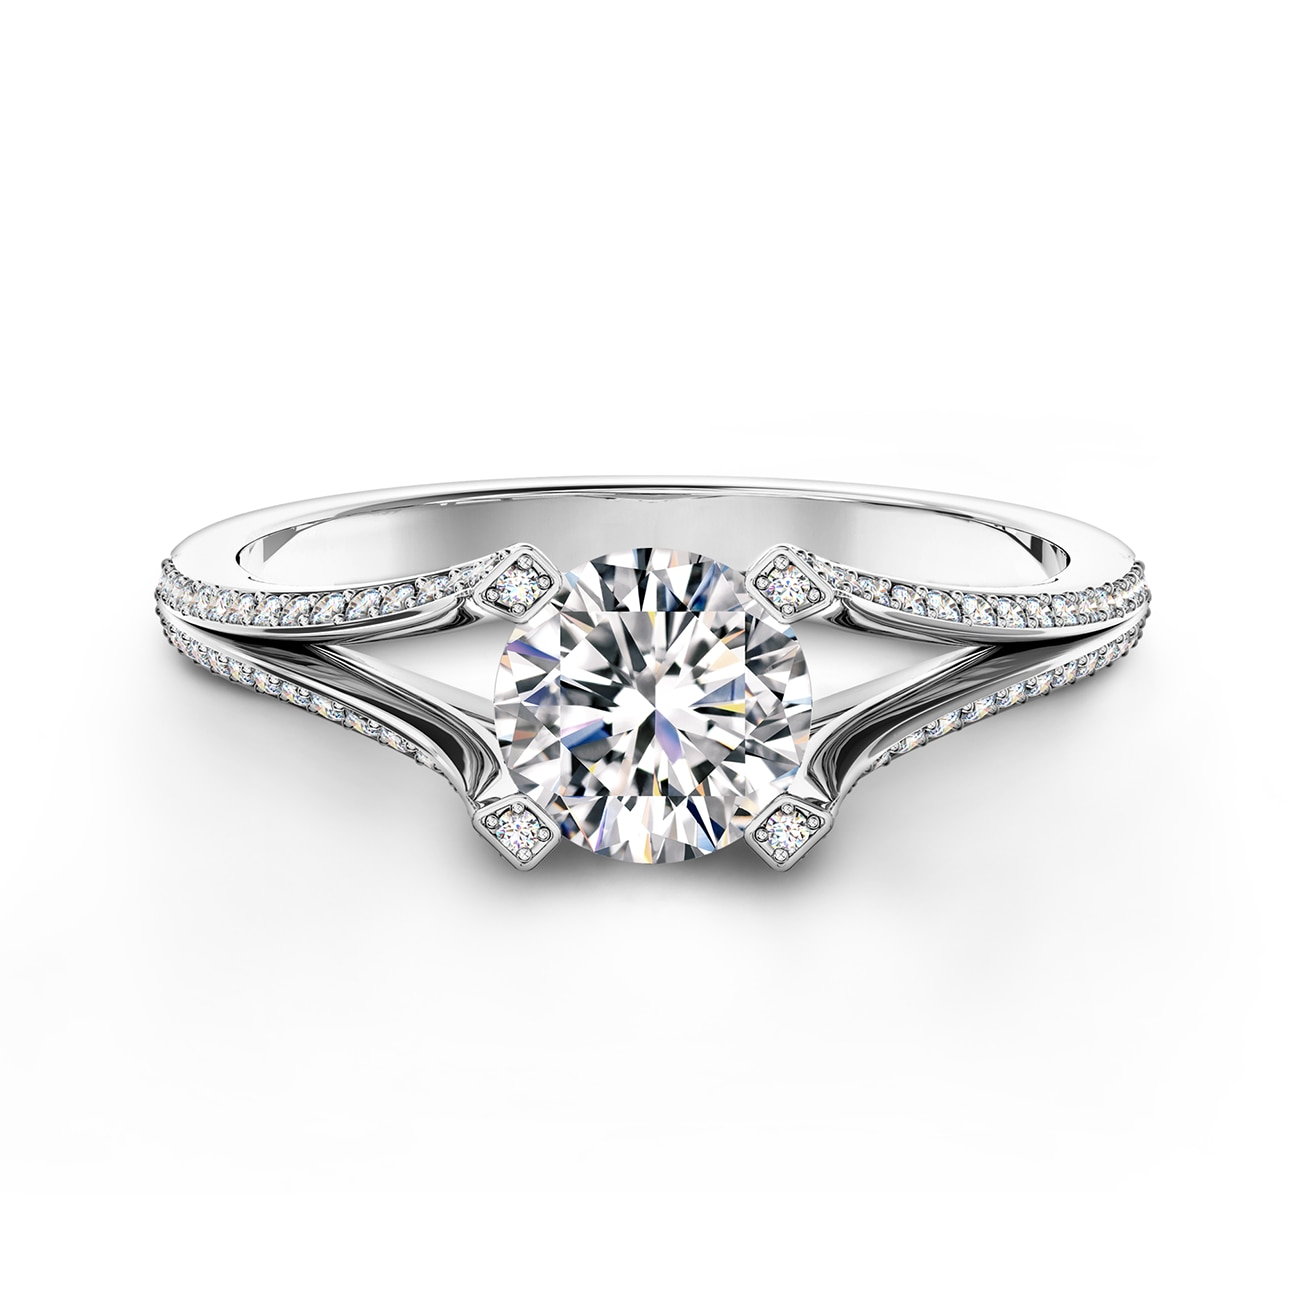 Cornerstones™ solitaire open shank pavé ring